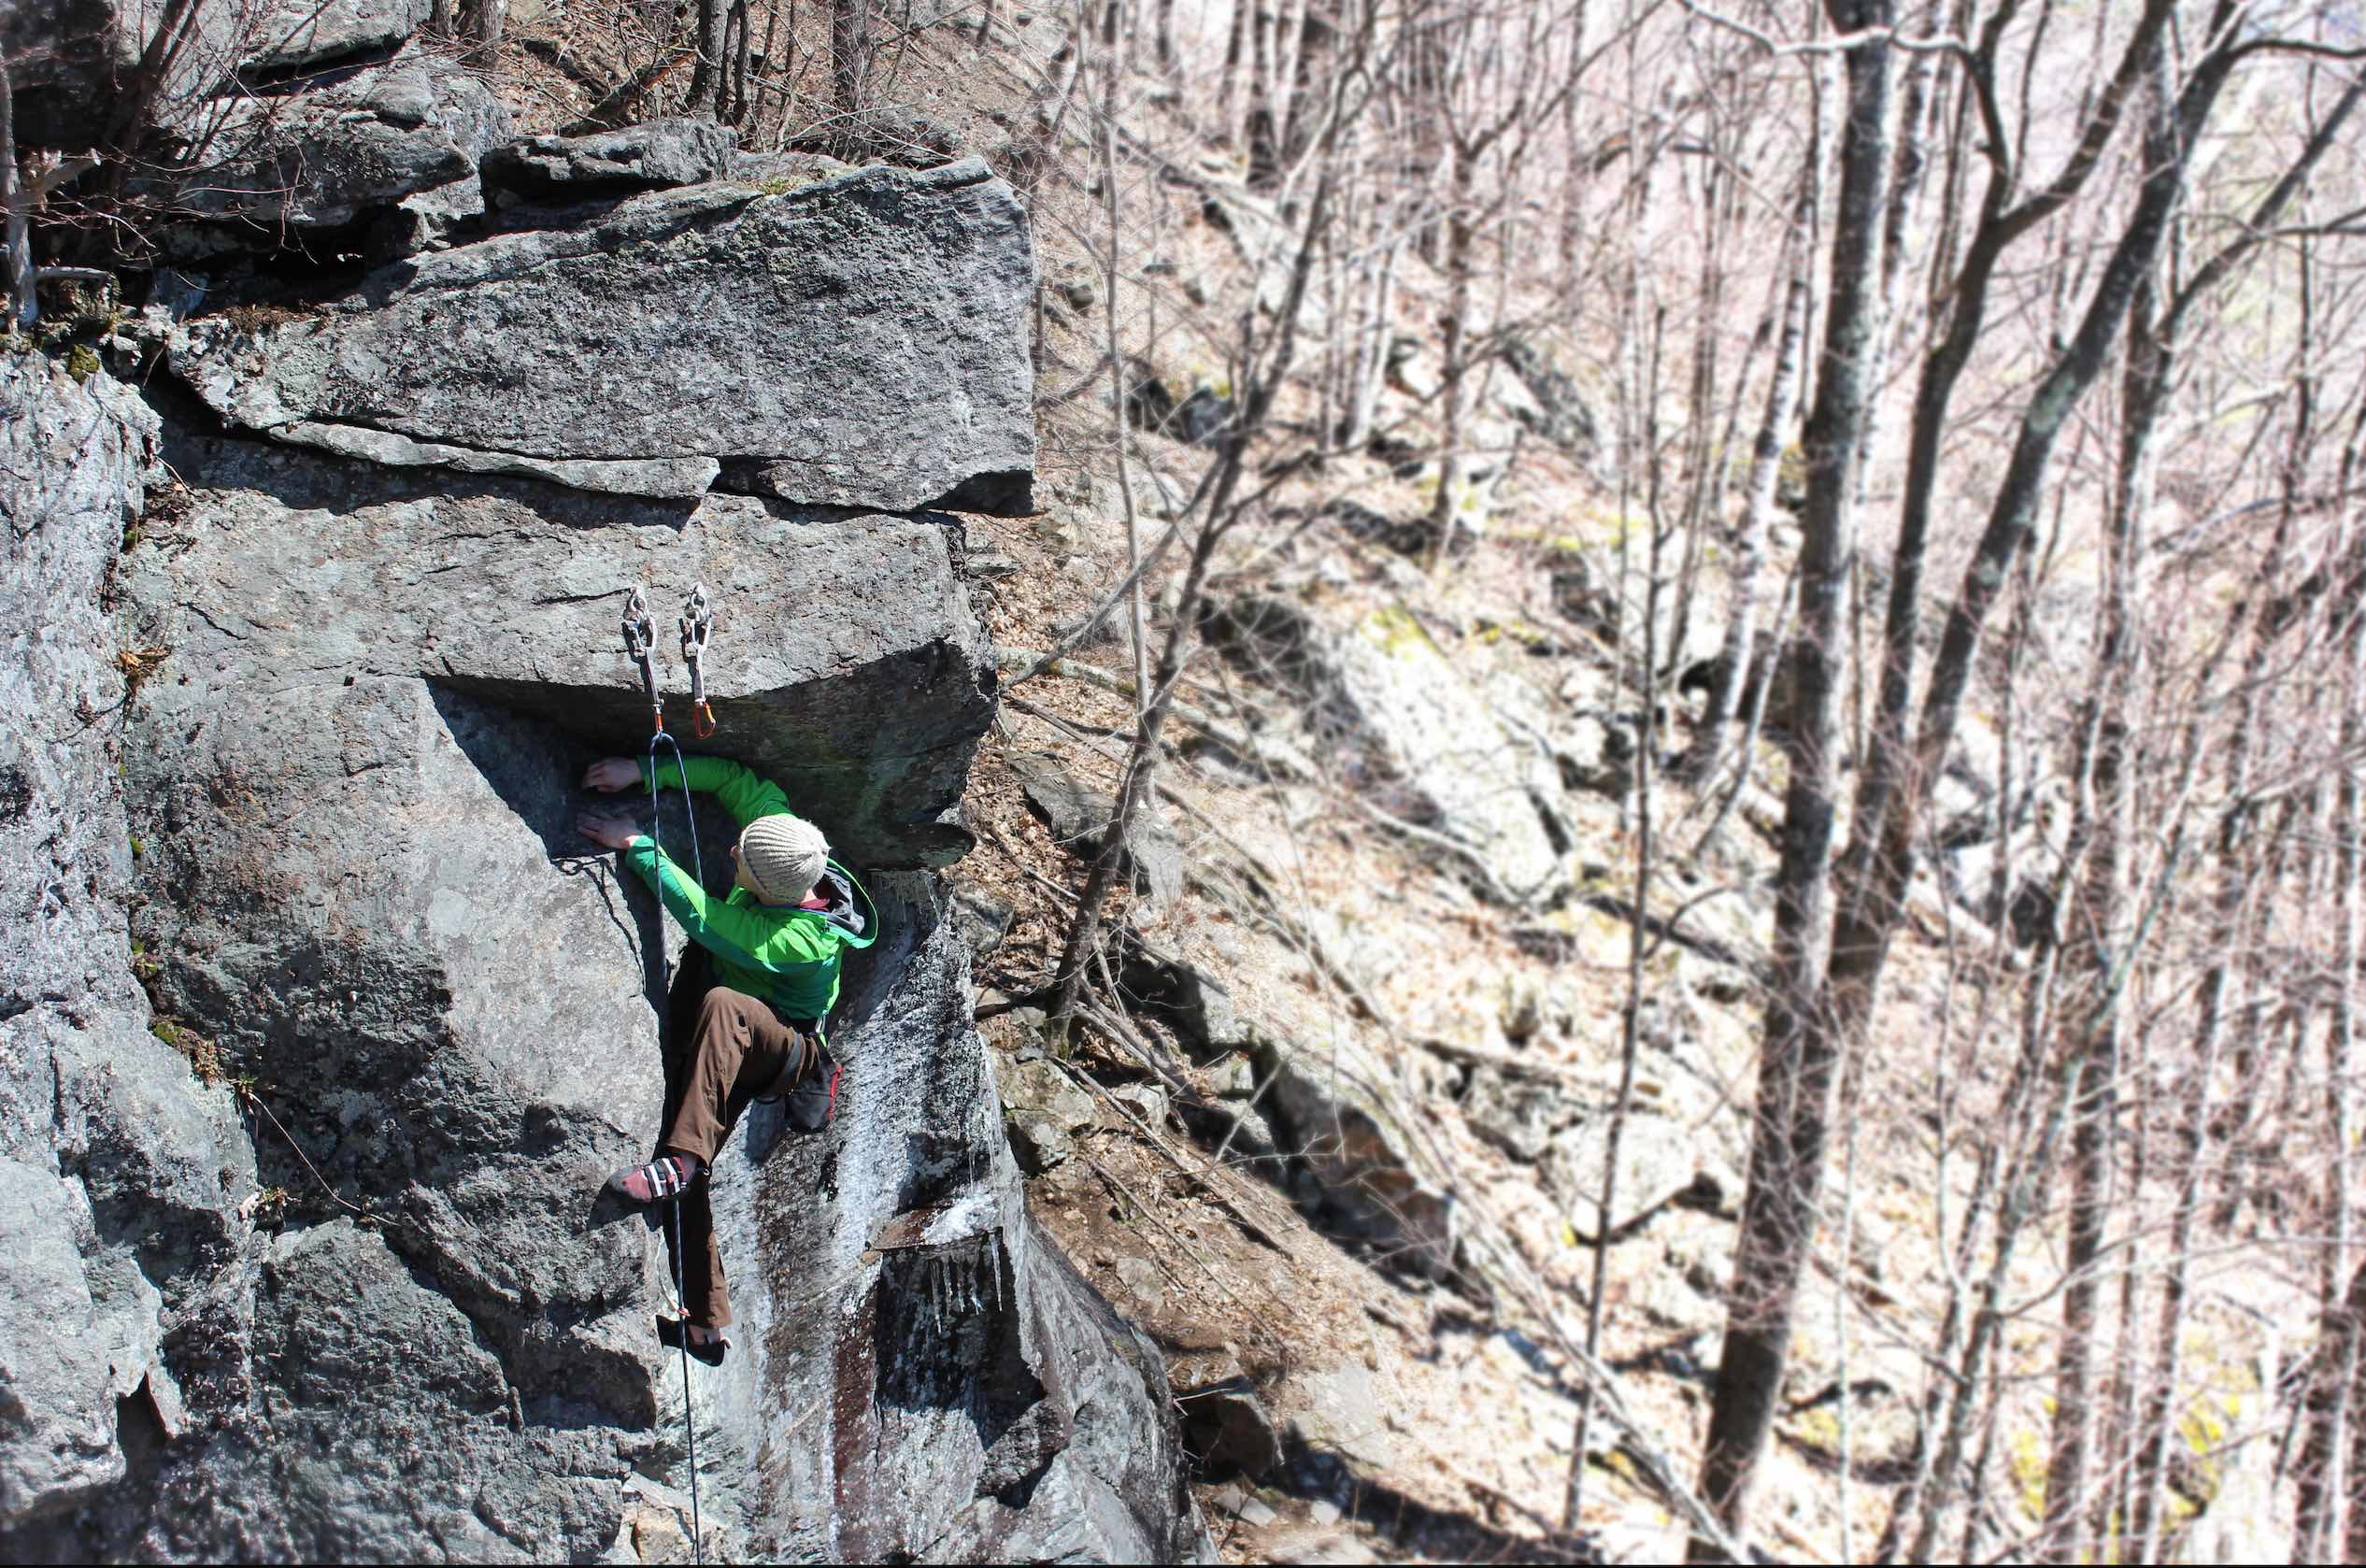 Alec Woolley on full throttle 5.12b as spring tries to get a grip.